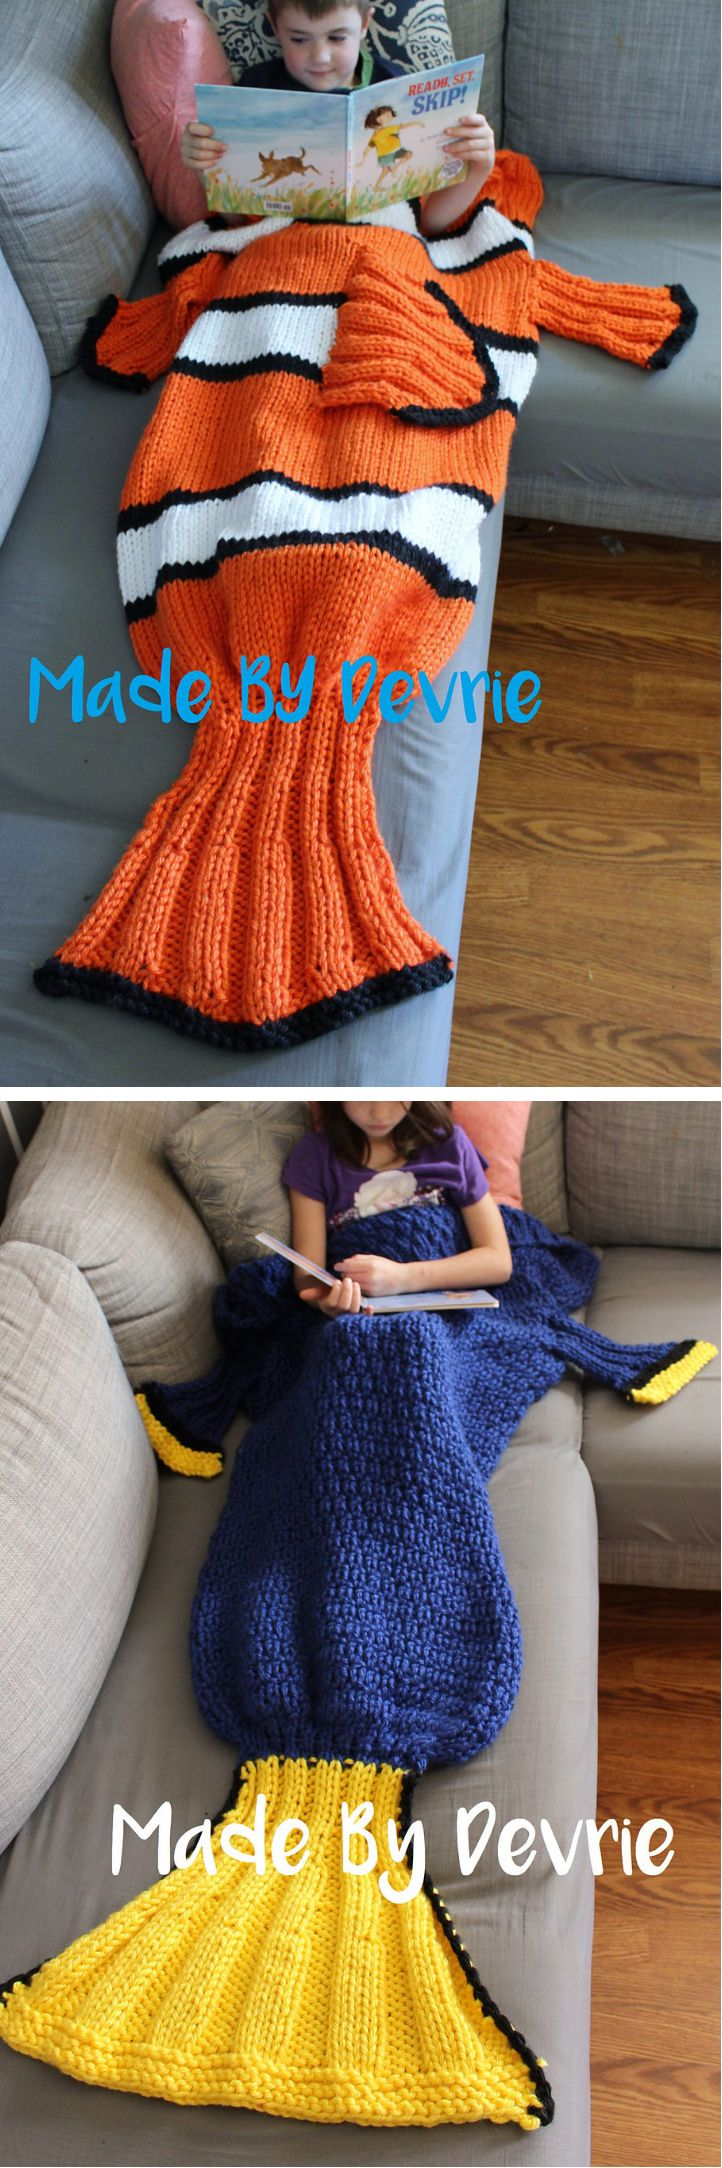 Knitting Patterns for Nemo and Dory Tail Blankets - Clown fish and Blue Tang fish snuggle sacks.The blankets are flat for the first half, which will make getting into them easier, and then closed off like a sleeping bag at the base of the tail to keep your feet nice and warm. Toddler, child and adult sizes! Designed by MadebyDevrie